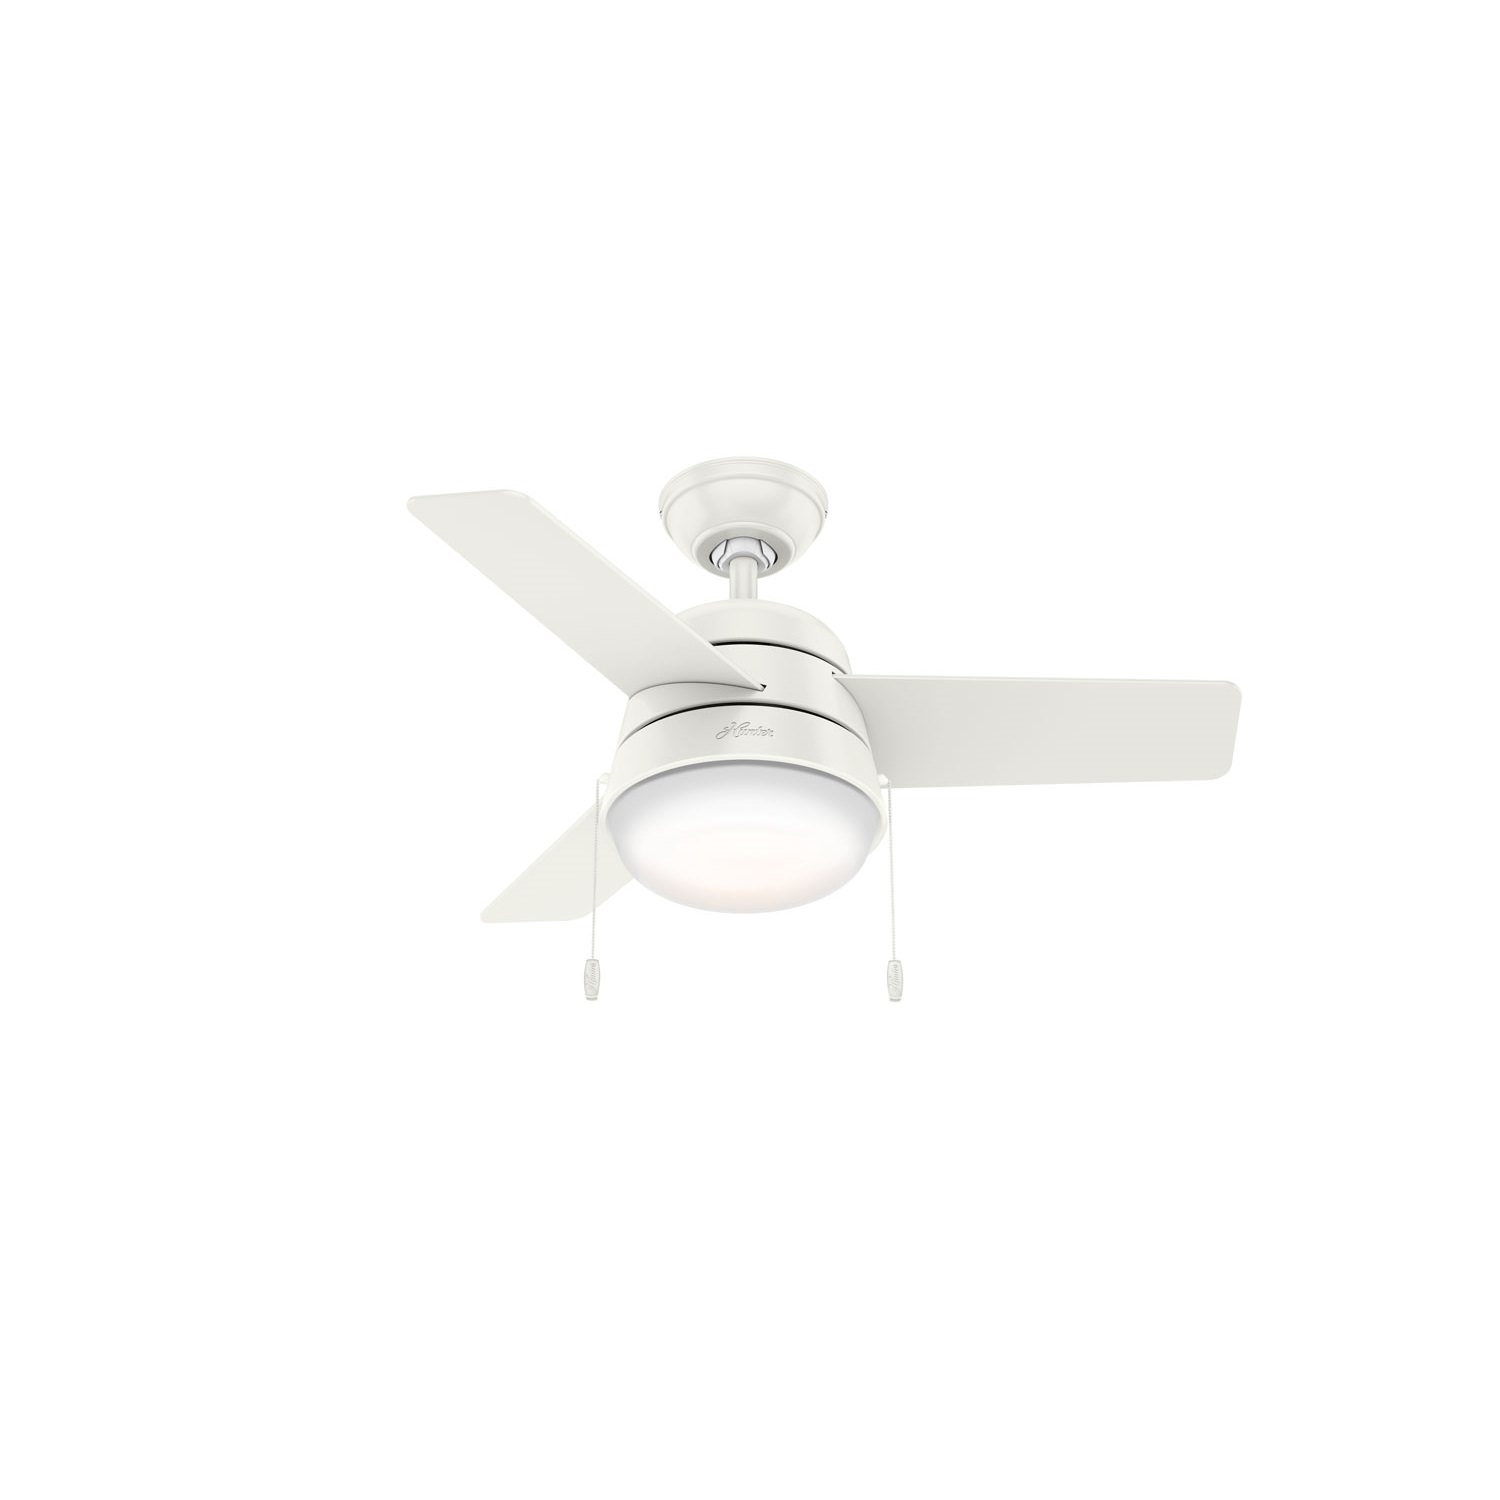 Hunter 59303 36 in. Aker Brushed Nickel Ceiling Fan with Light by Hunter